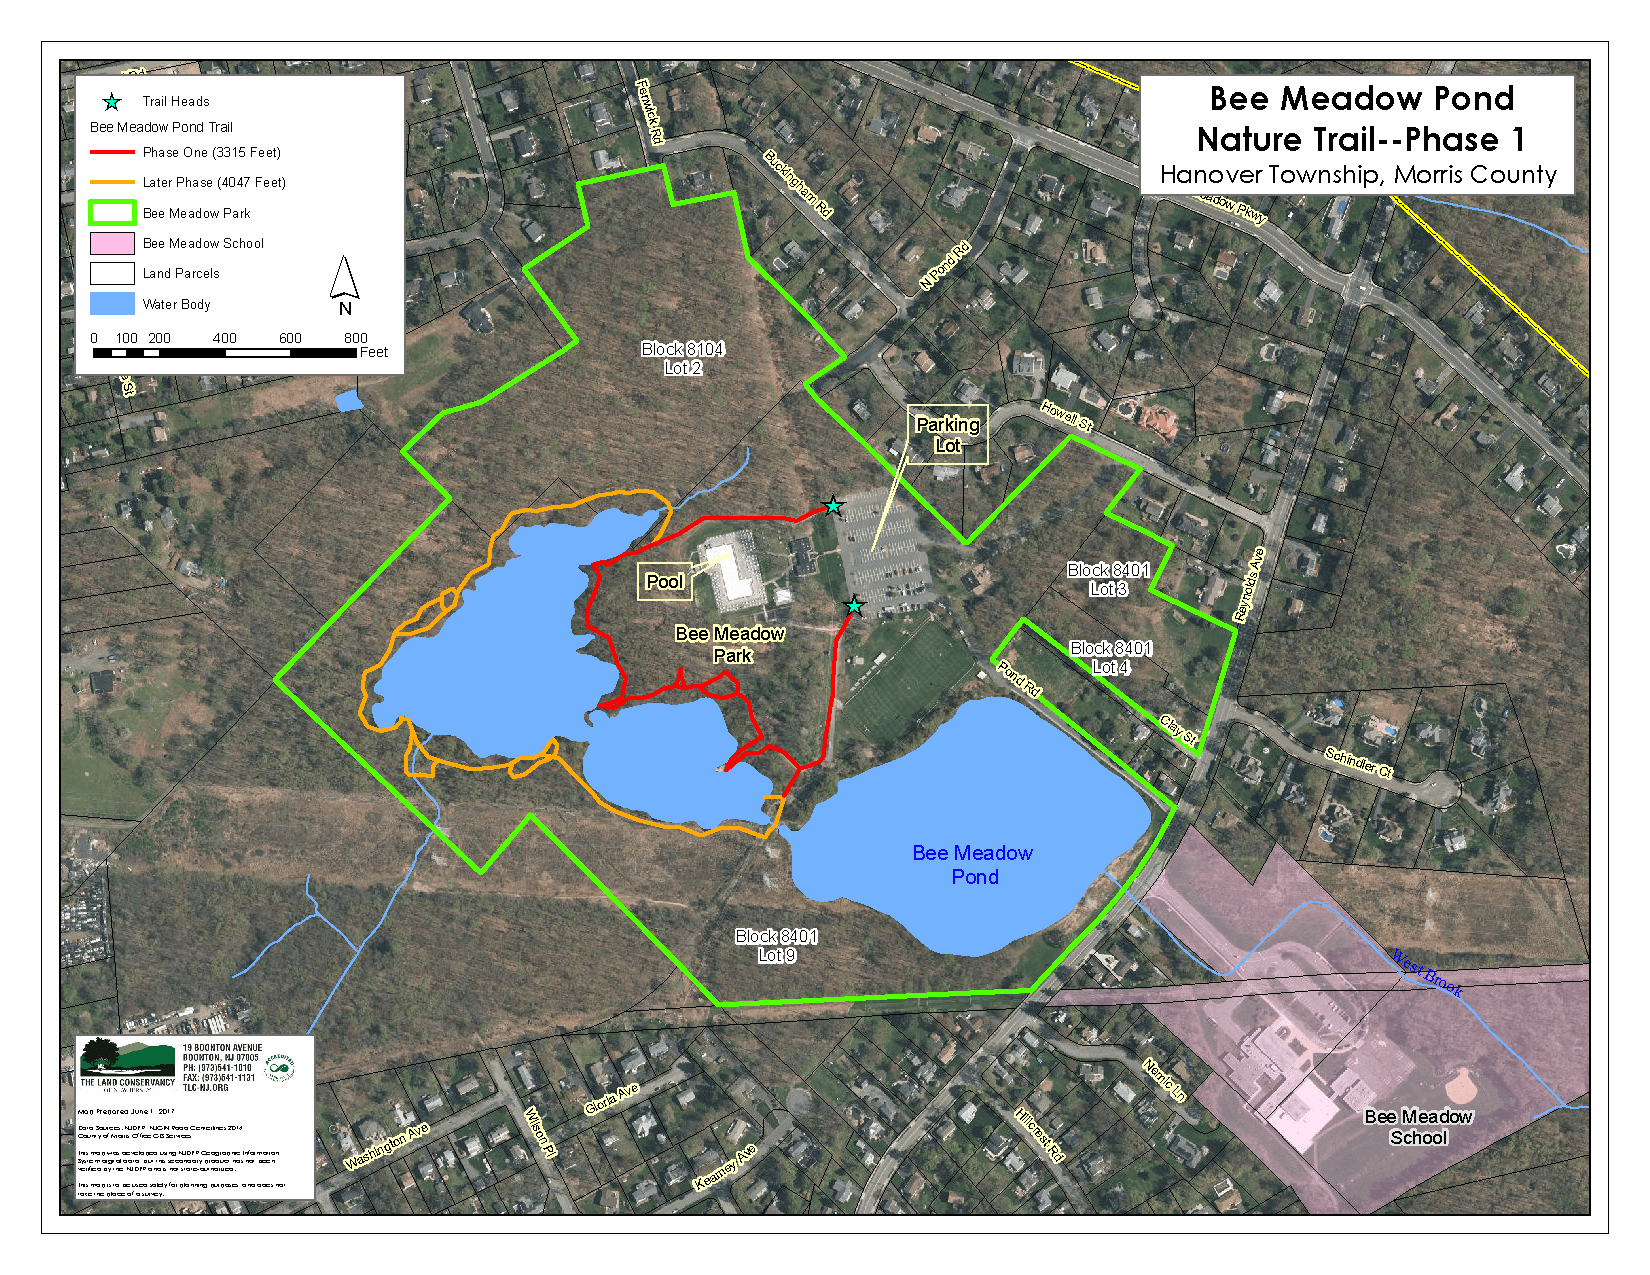 Bee Meadow Pond Nature Trail Map